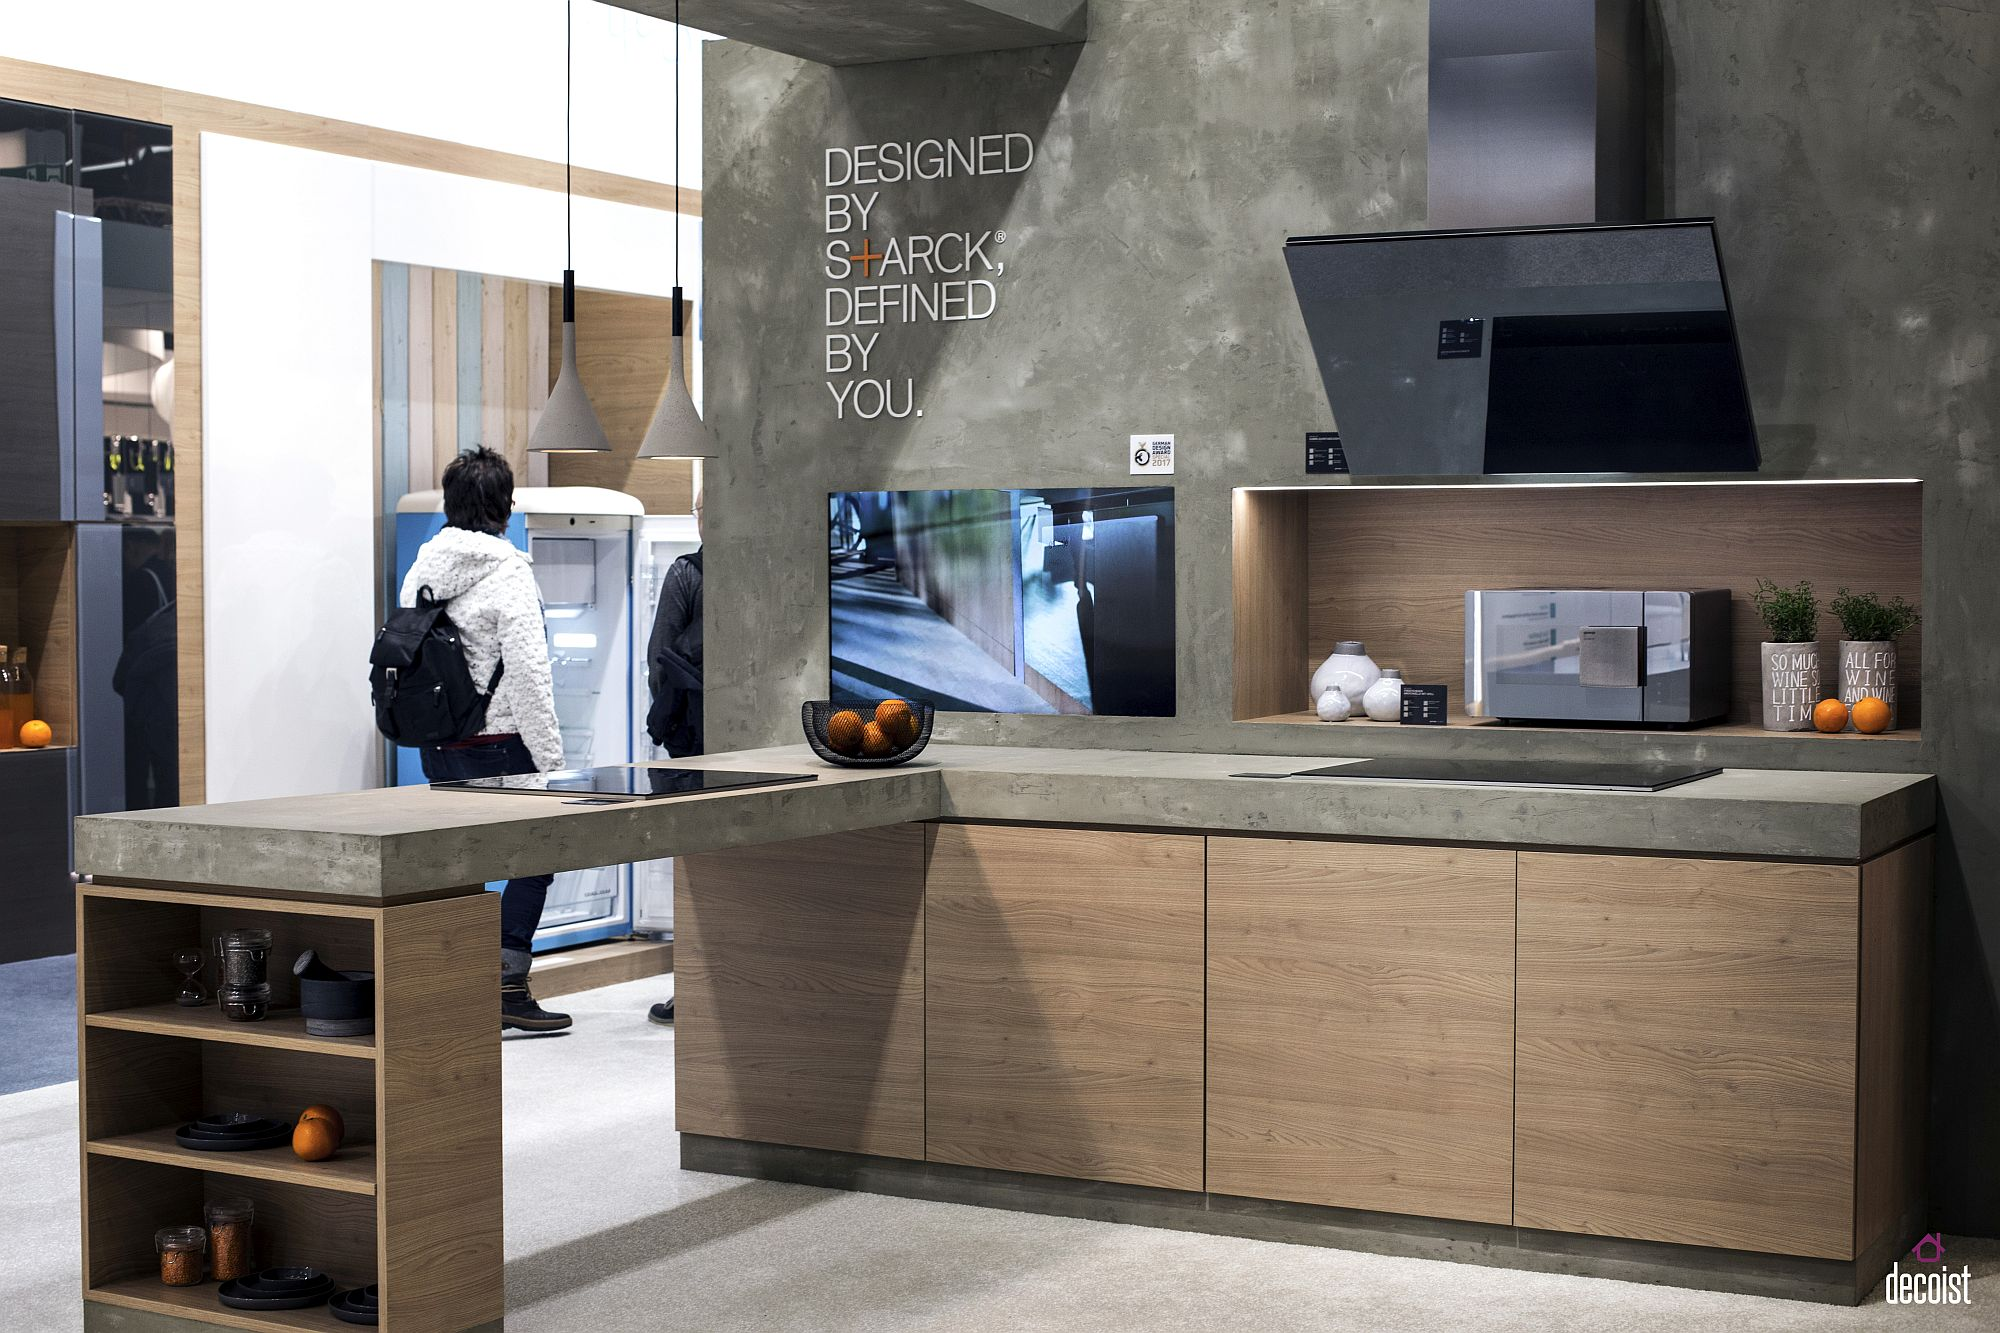 A-slab-of-wood-or-concrete-can-add-additional-space-to-the-one-wall-kitchen